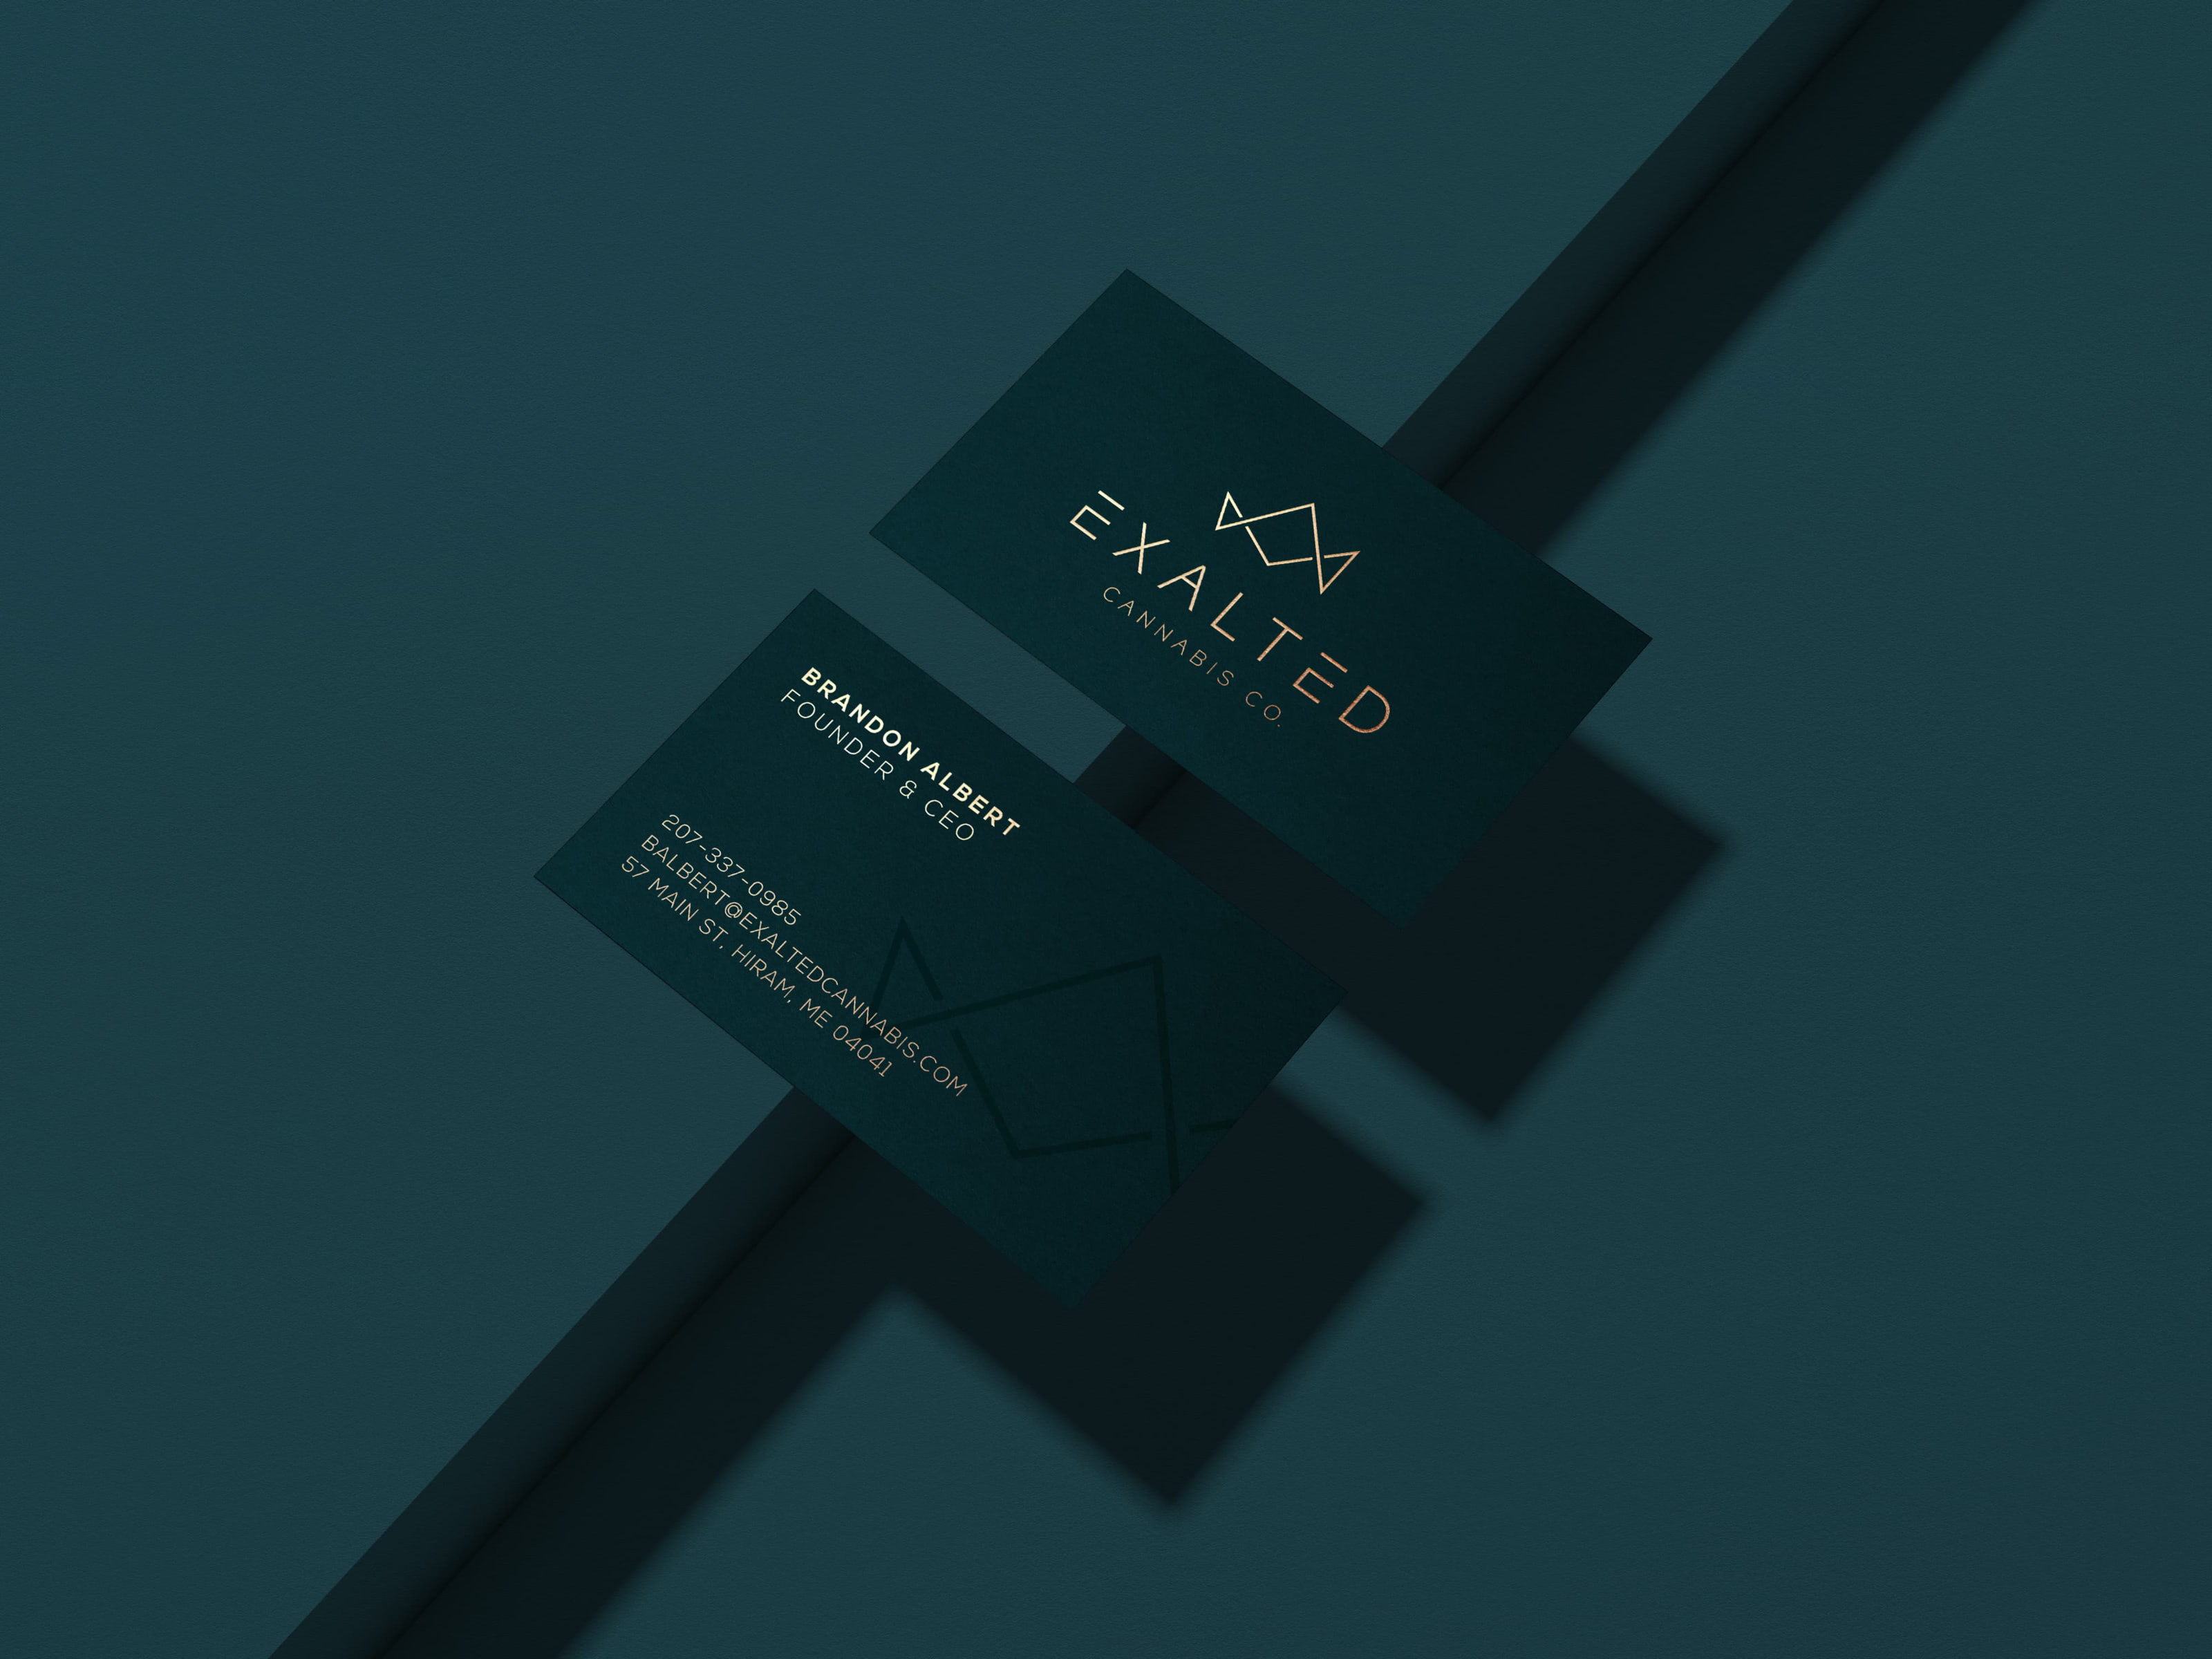 Exalted business card 3D mockup with gold foil accents on a dark background